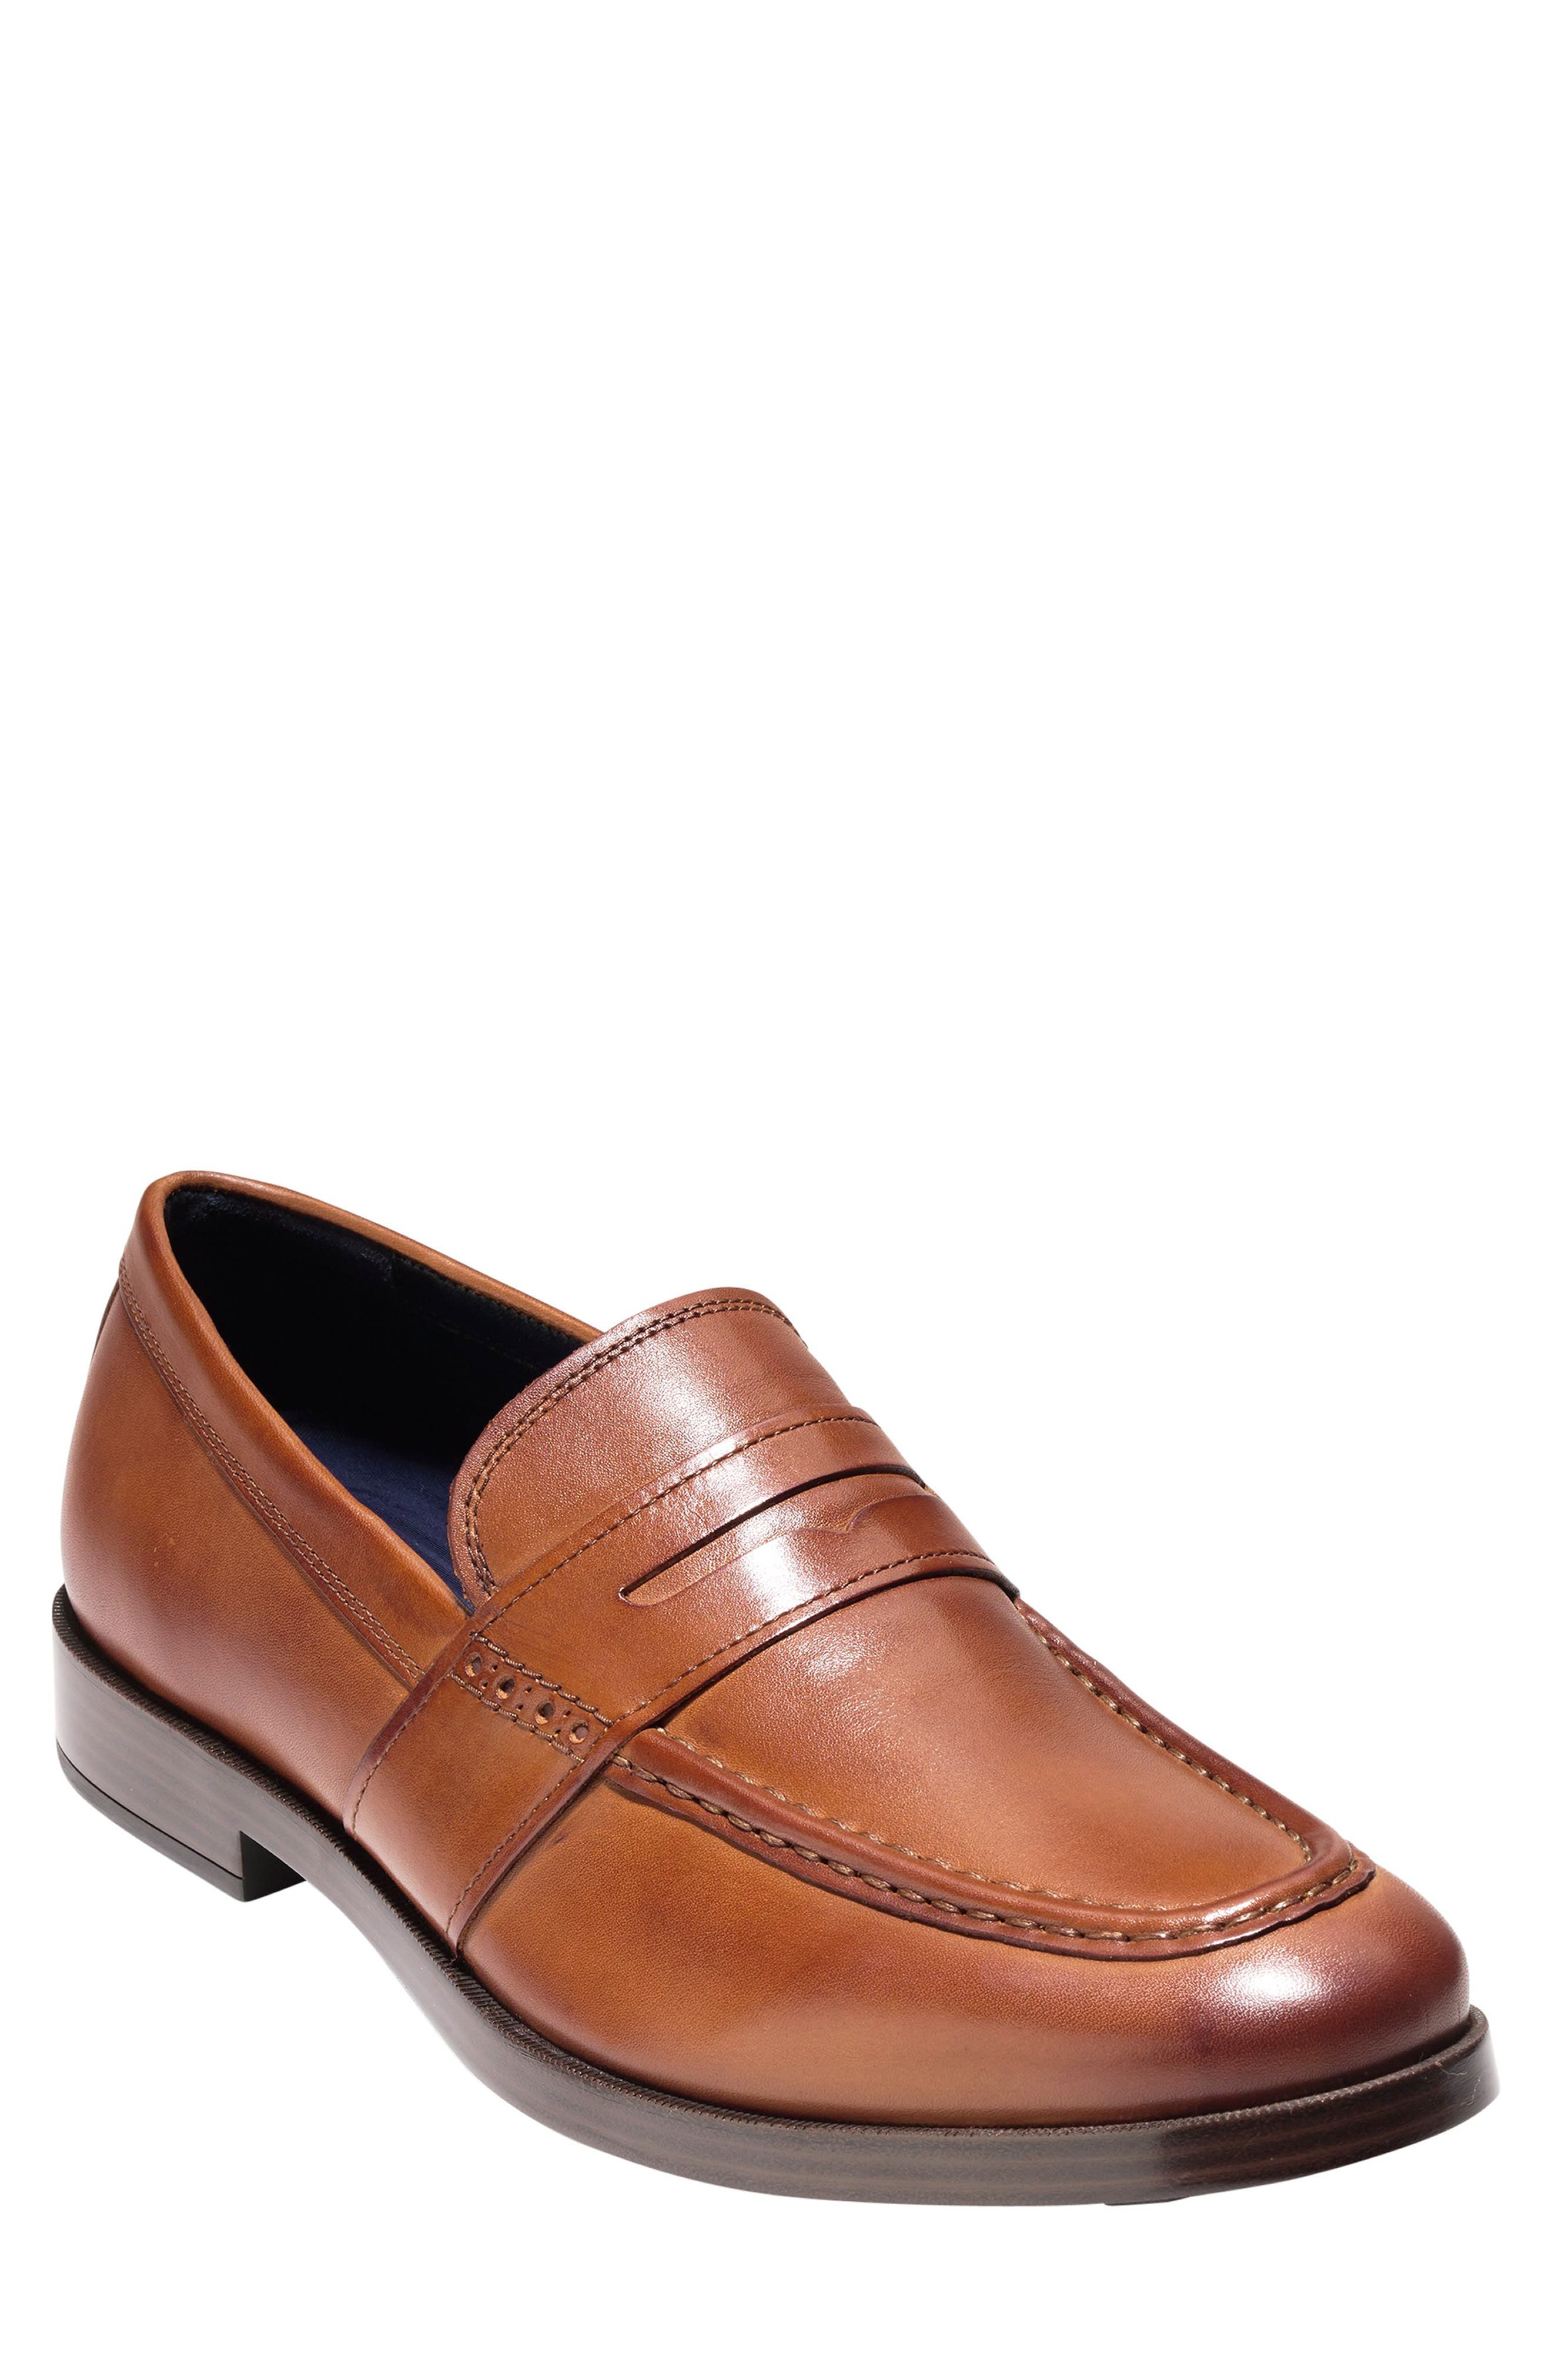 Cole Haan Jefferson Grand Penny Loafer, Brown